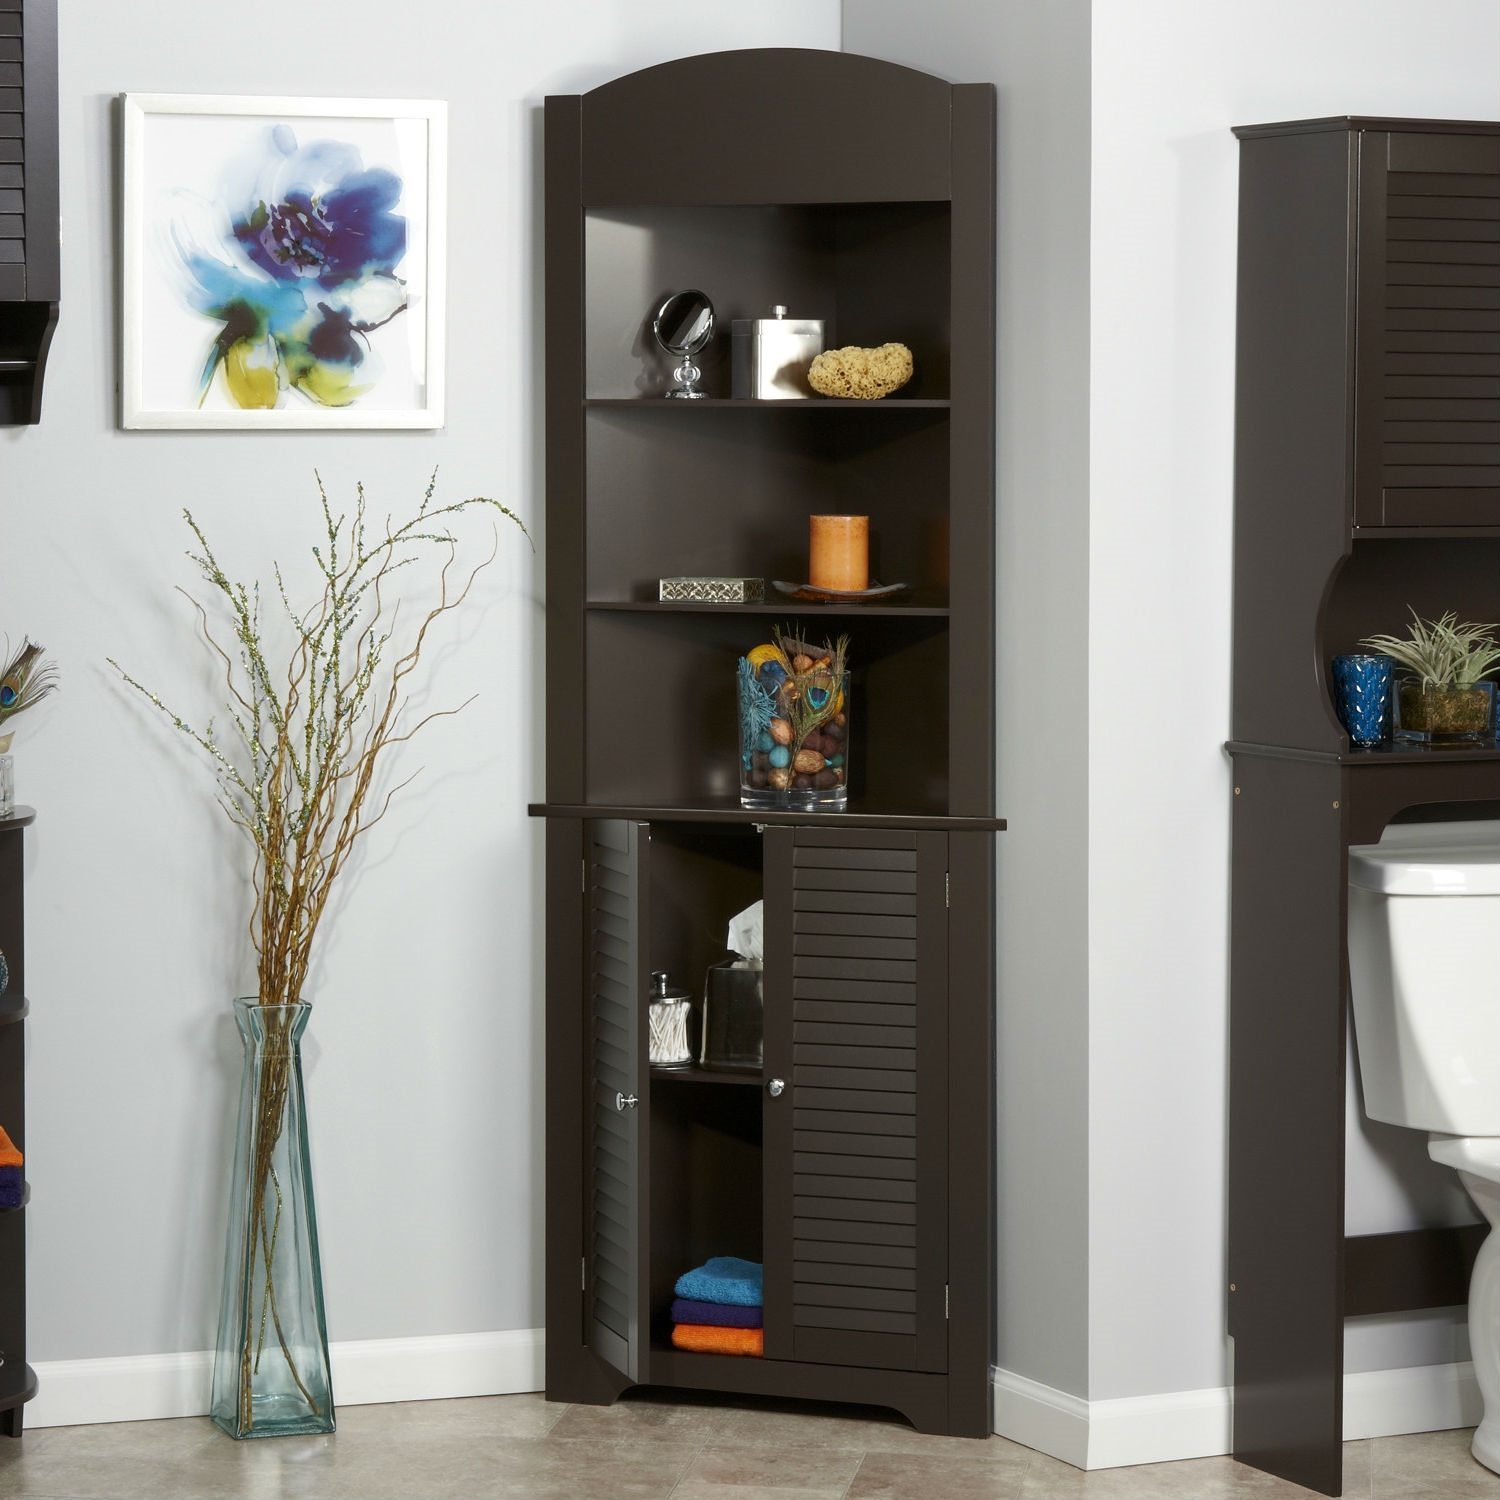 espresso bathroom linen tower corner towel storage cabinet with 3 open shelves - Towel Storage